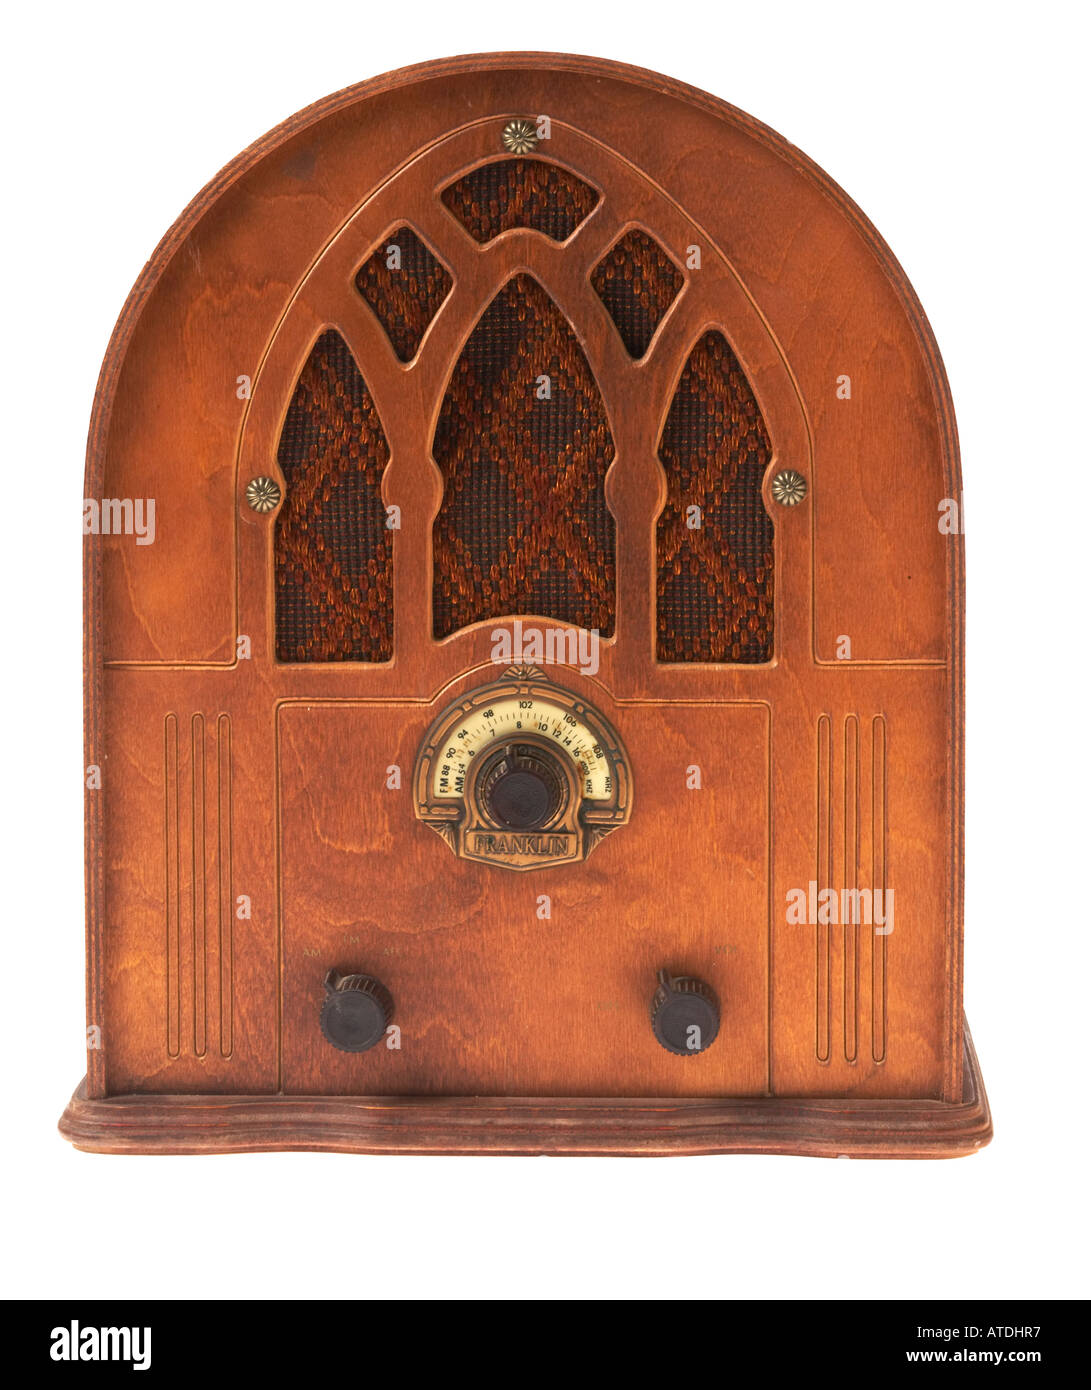 Reproduction of 1930s style wooden radio - Stock Image